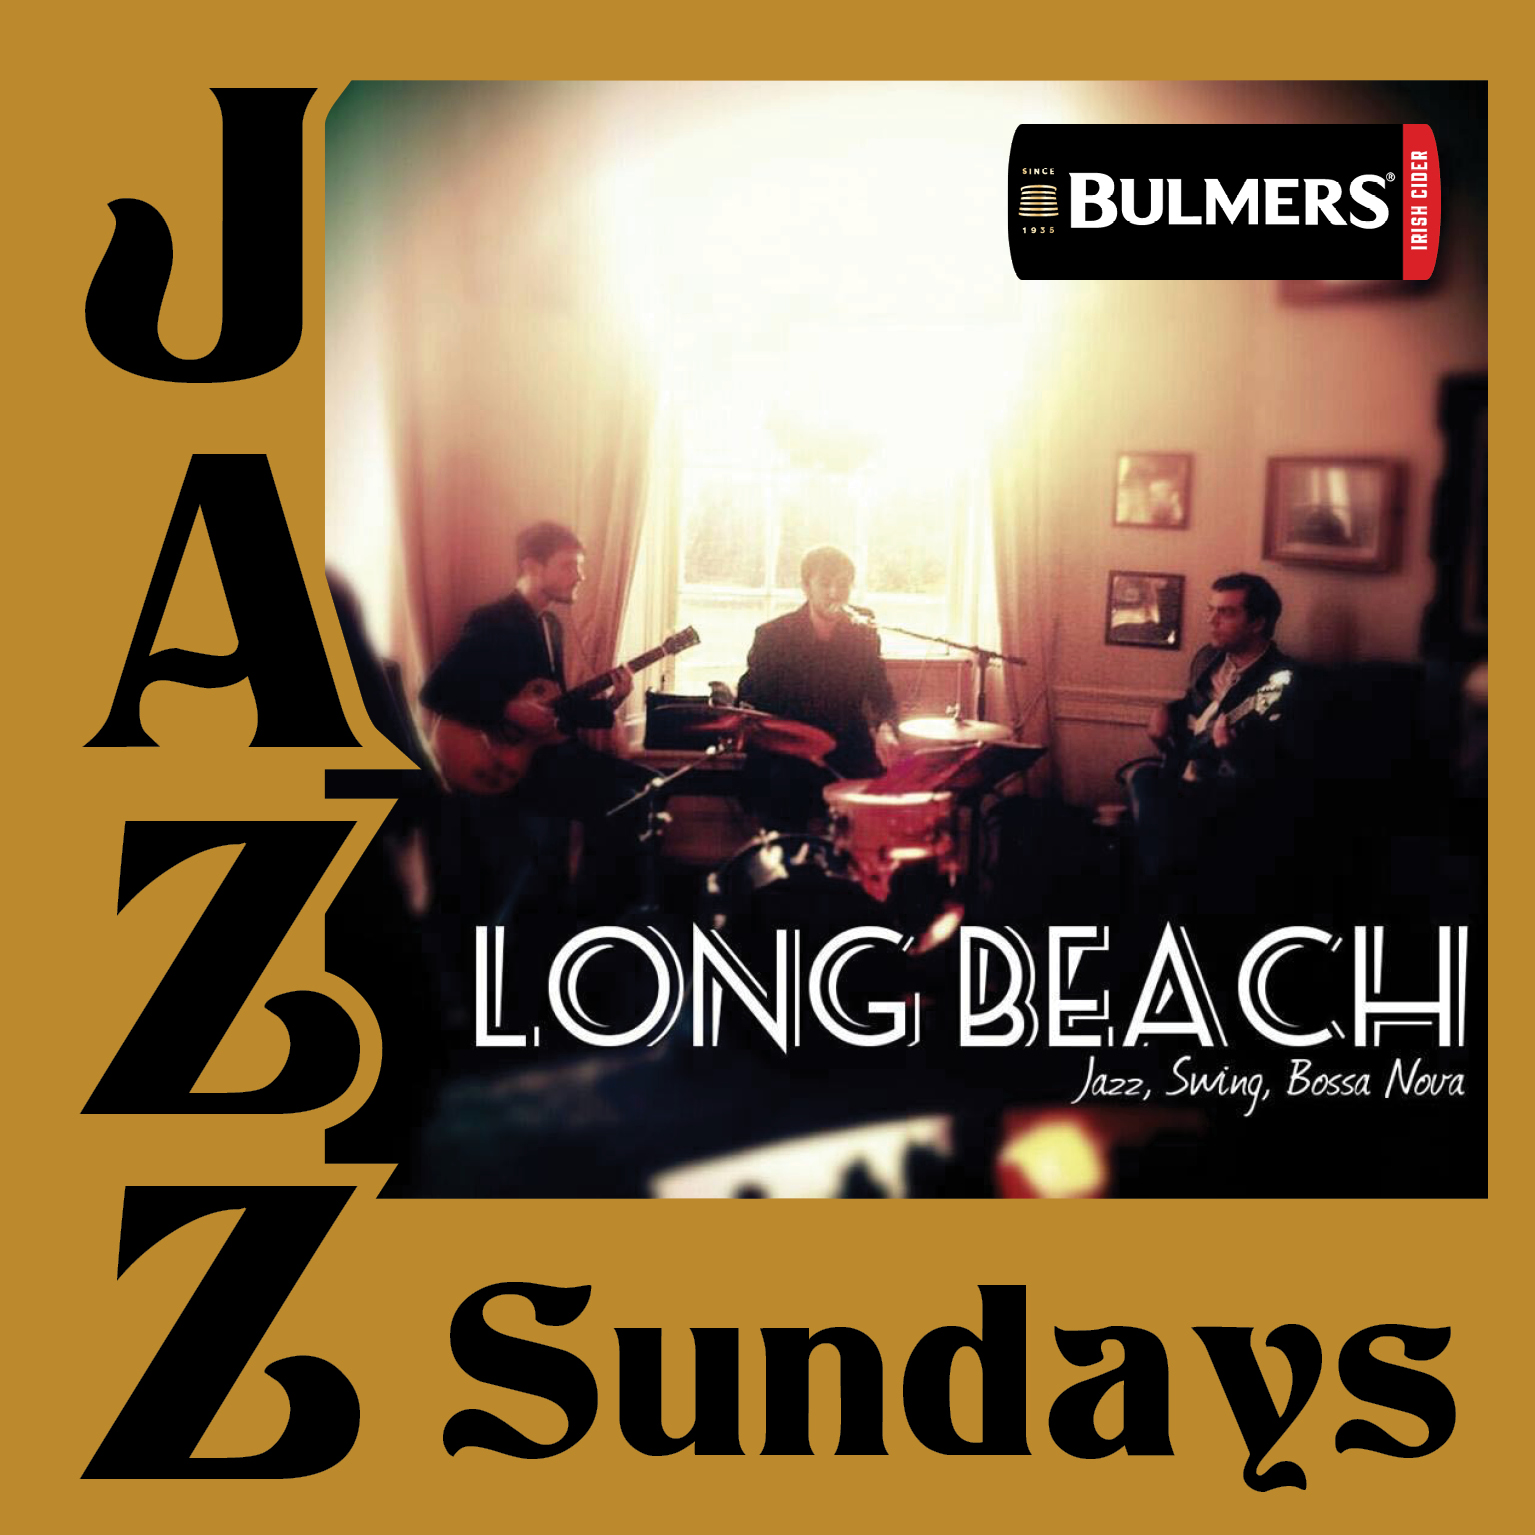 Pennyhill jazz nights in association with Bulmers. Enjoy jazz and swing every Sunday at Pennyhill.